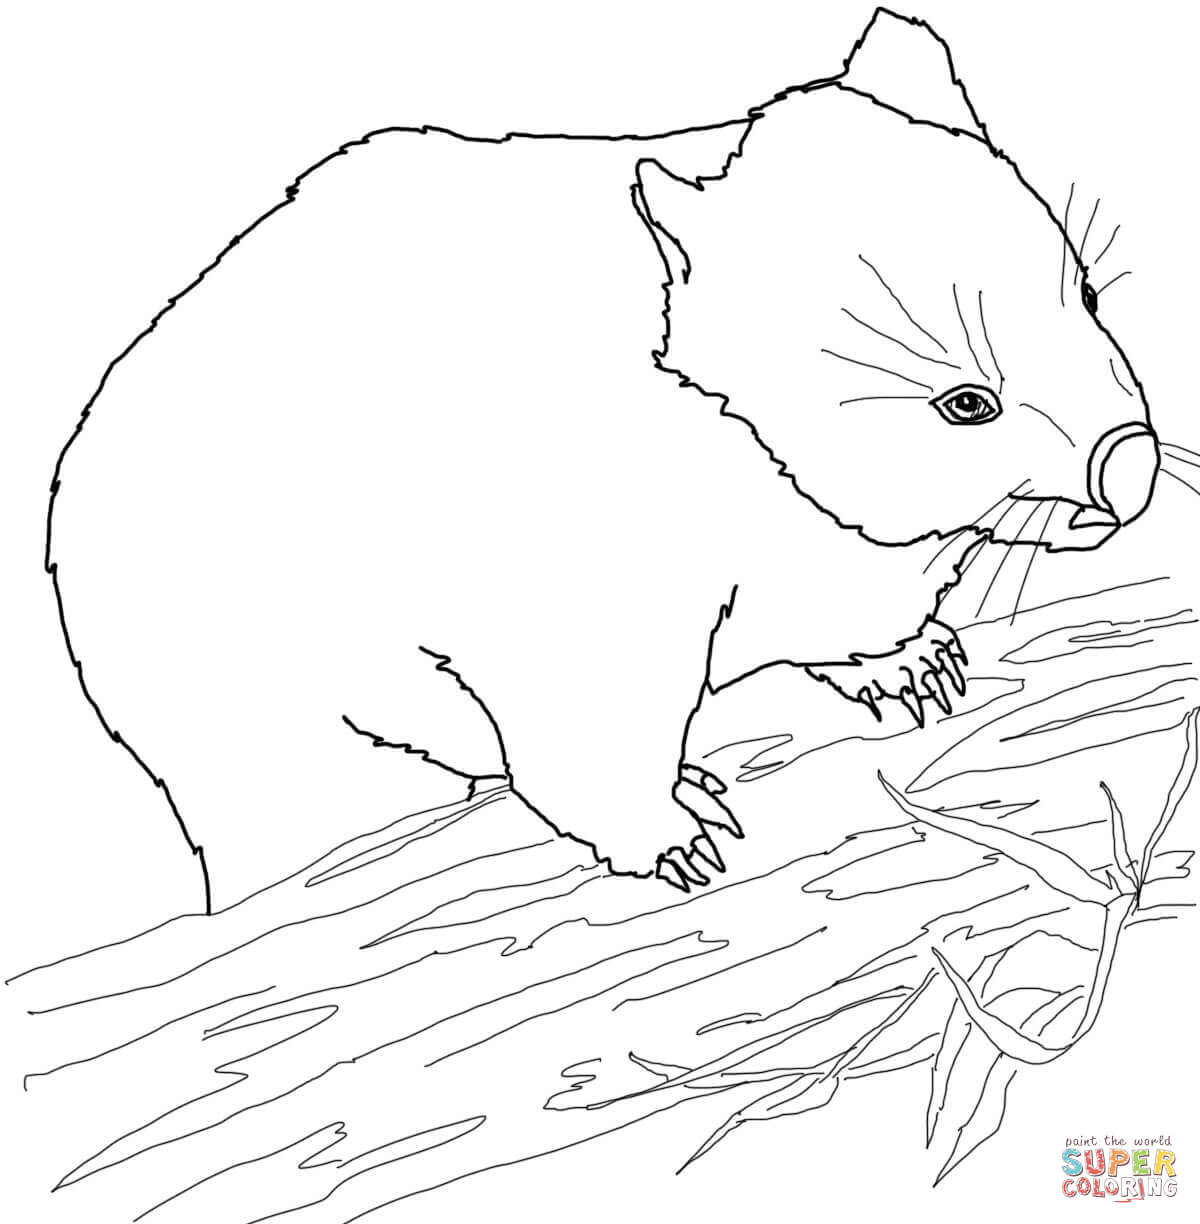 wombat colouring pages wombat coloring page free printable coloring pages pages colouring wombat